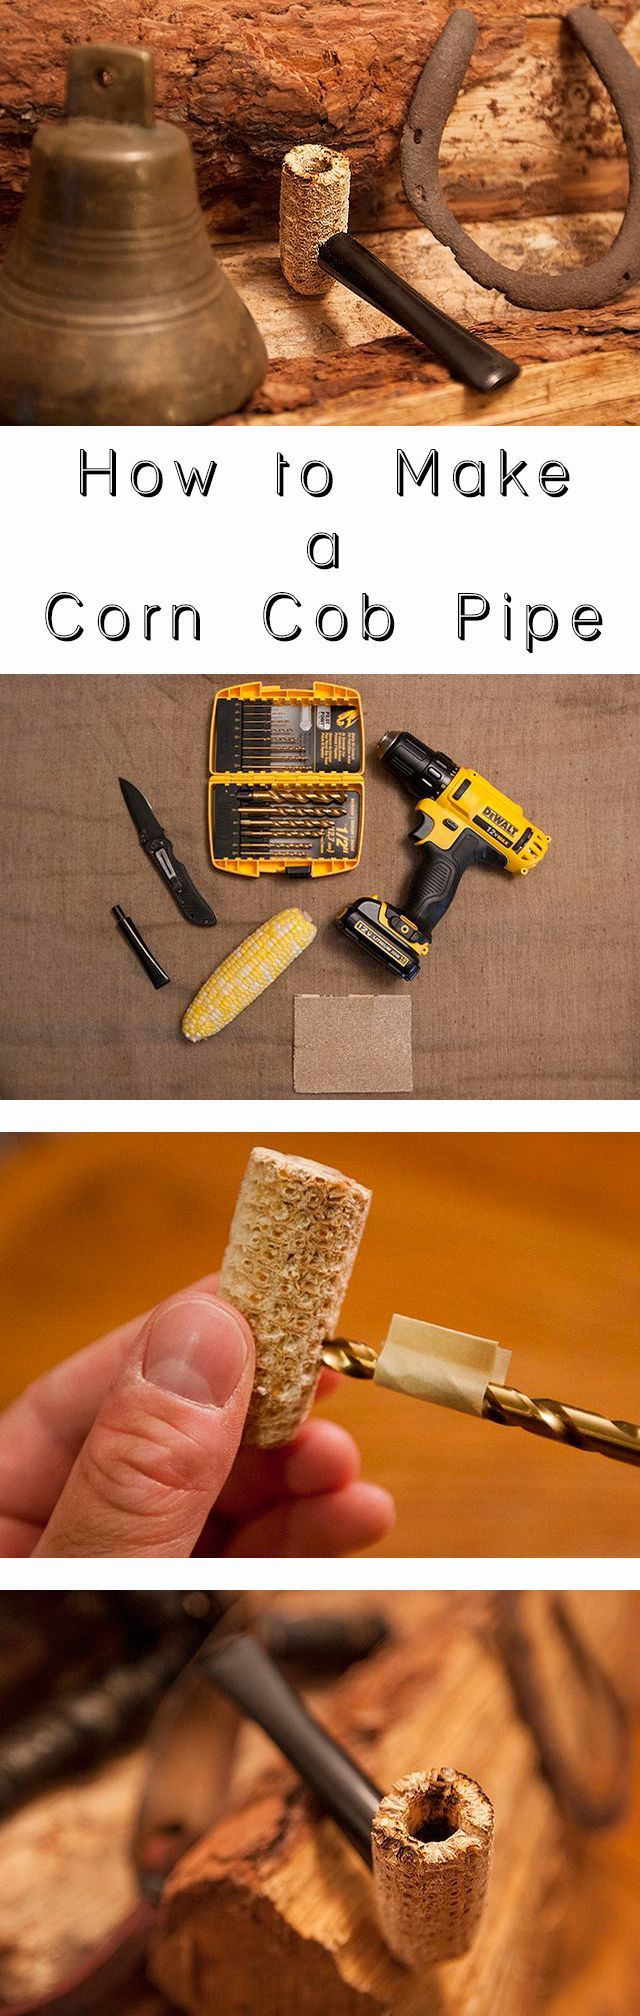 How to make a pipe from a corn cob, just like Frosty the Snowman's! http://www.ehow.com/how_4499718_make-corn-cob-pipe.html?utm_source=pinterest.com&utm_medium=referral&utm_content=freestyle&utm_campaign=fanpage